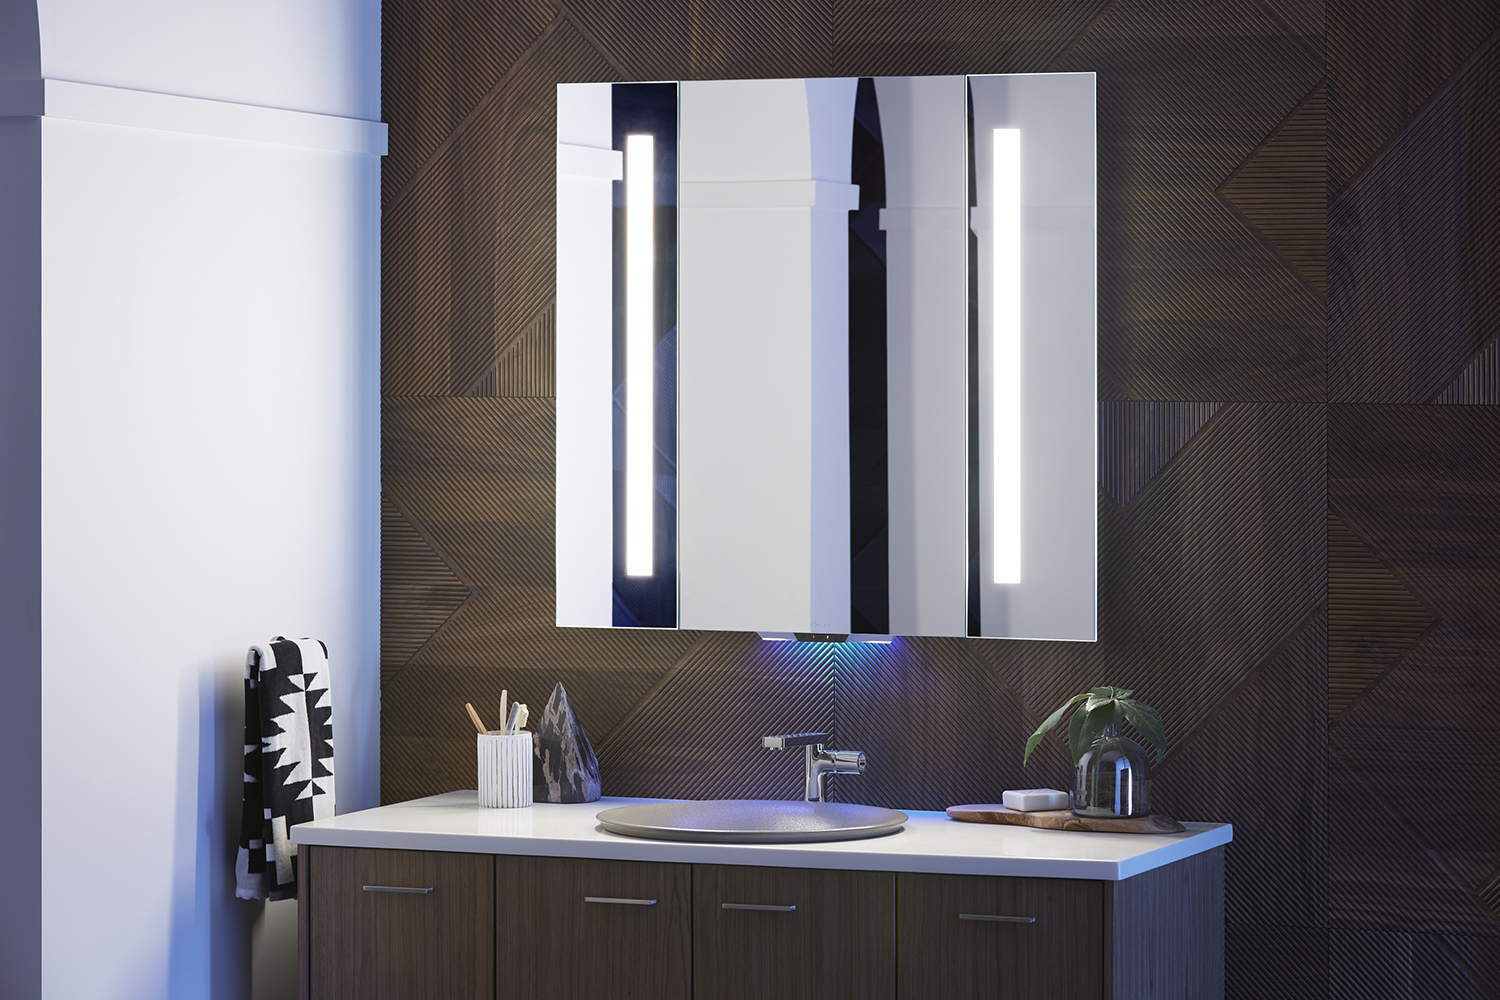 Verdera an Alexaenabled mirror from Kohler makes your